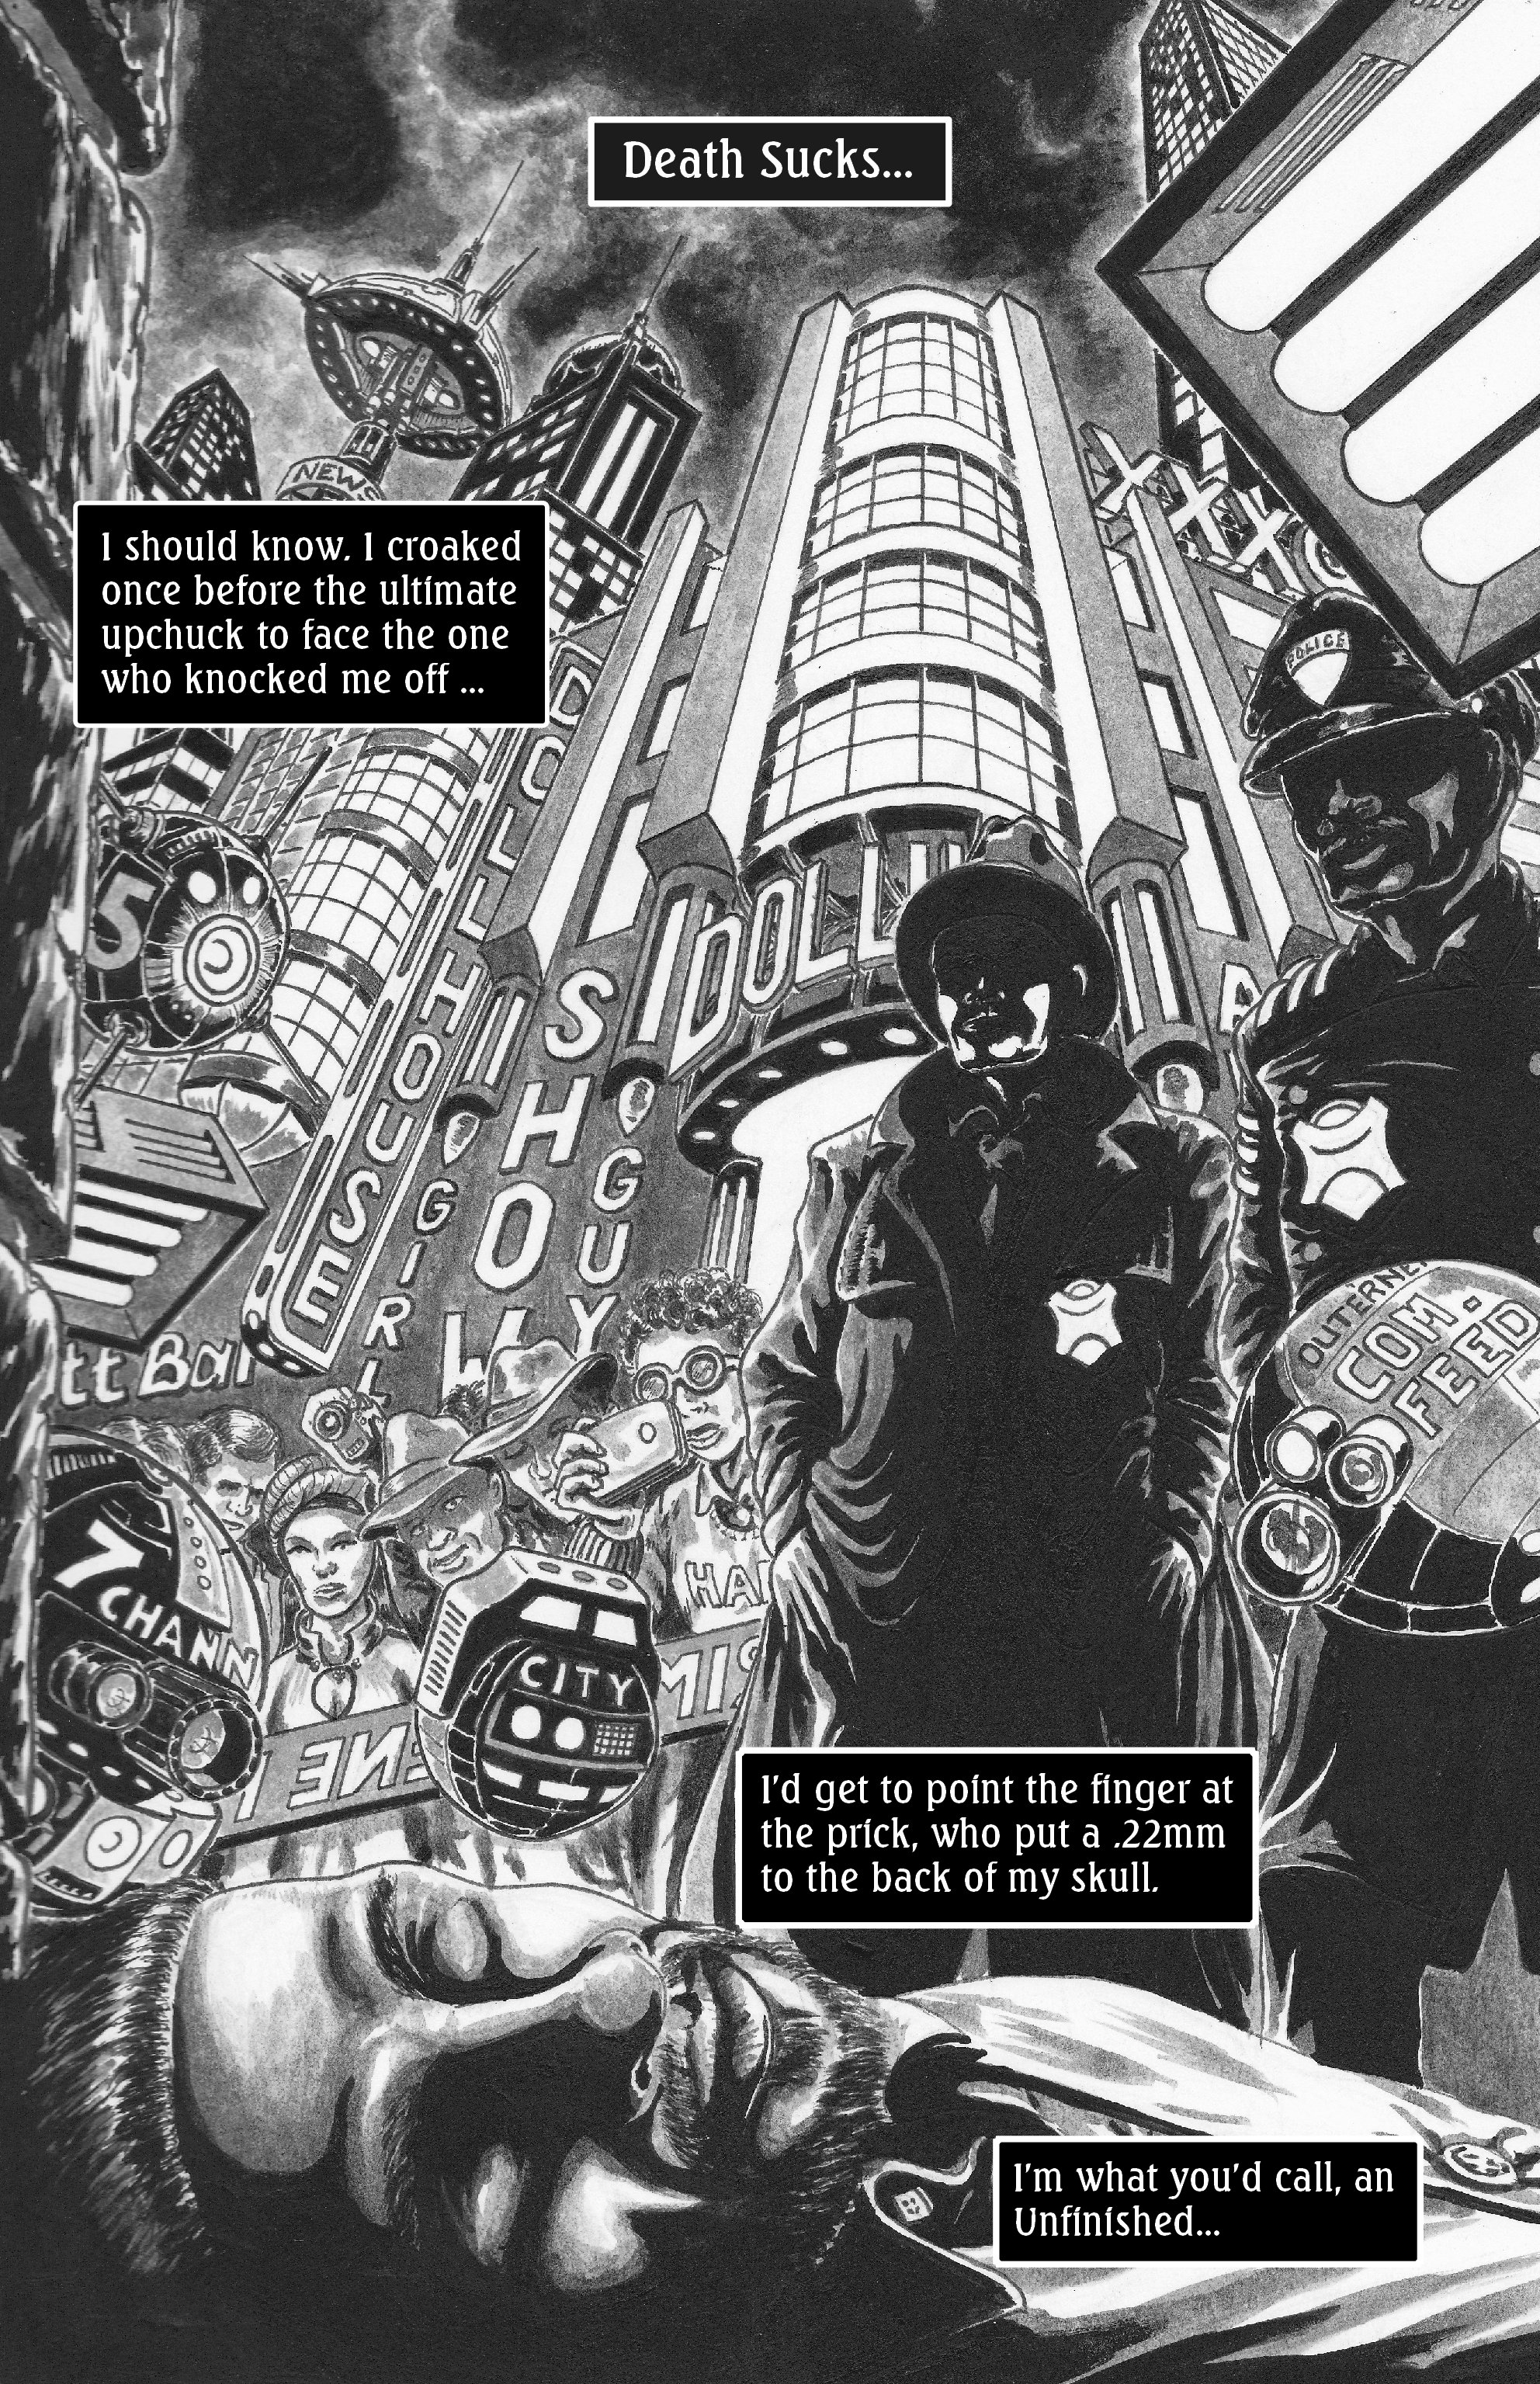 Graphic Novel - The Unfinished, By Patrice Williams Marks